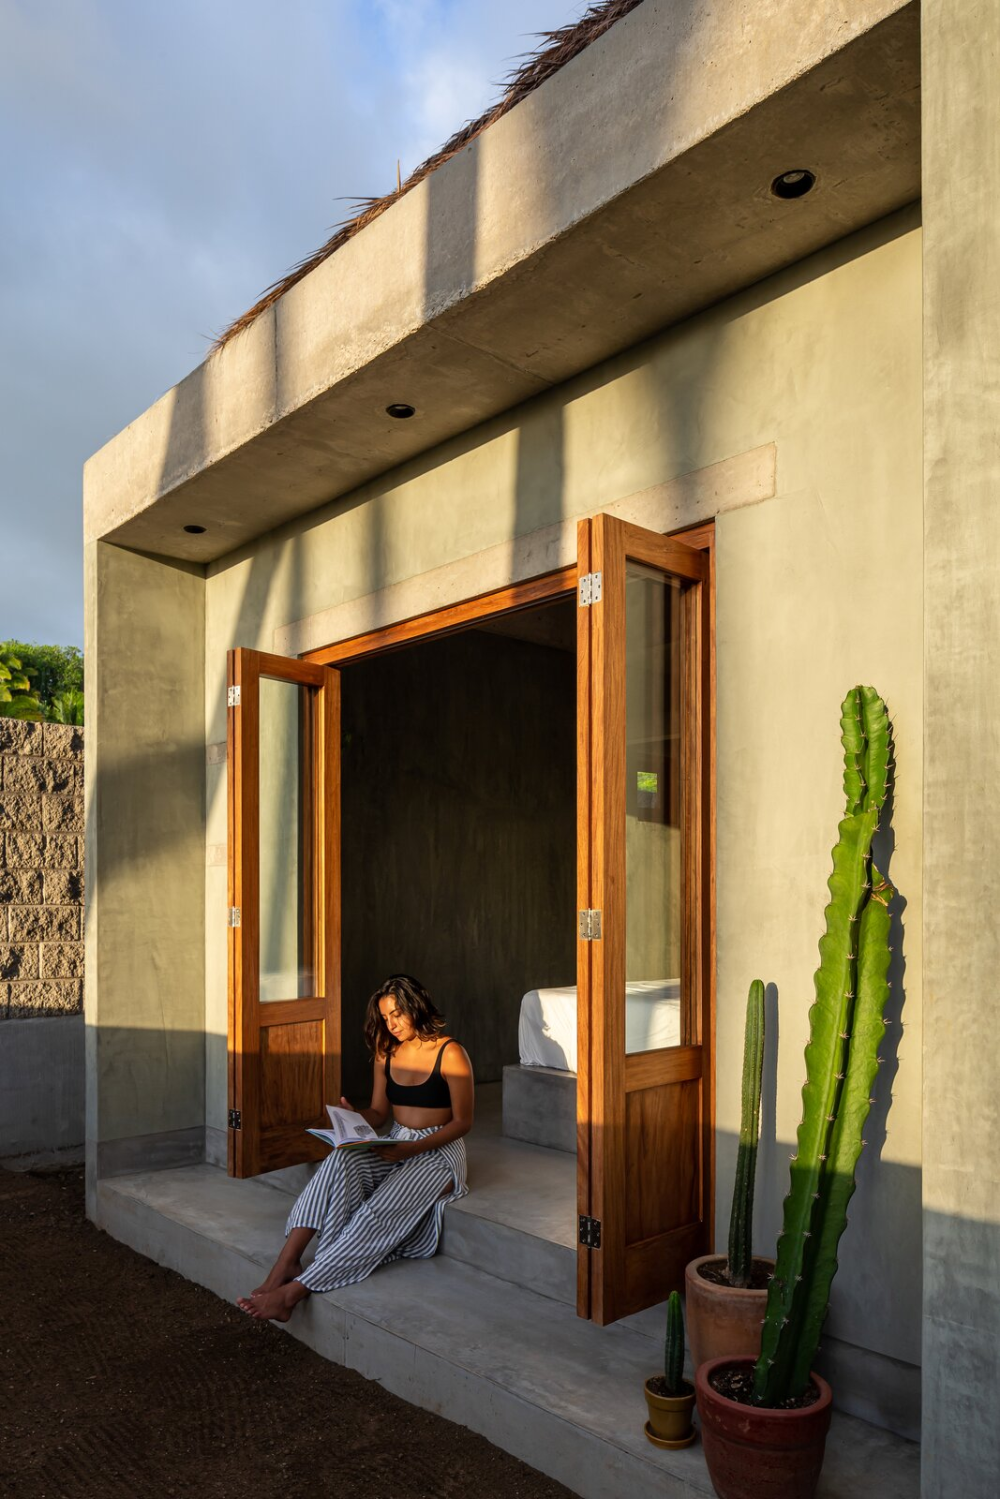 Photo 16 of 16 in A Tiny, Thatched-Roof Hideaway in Mexico P…